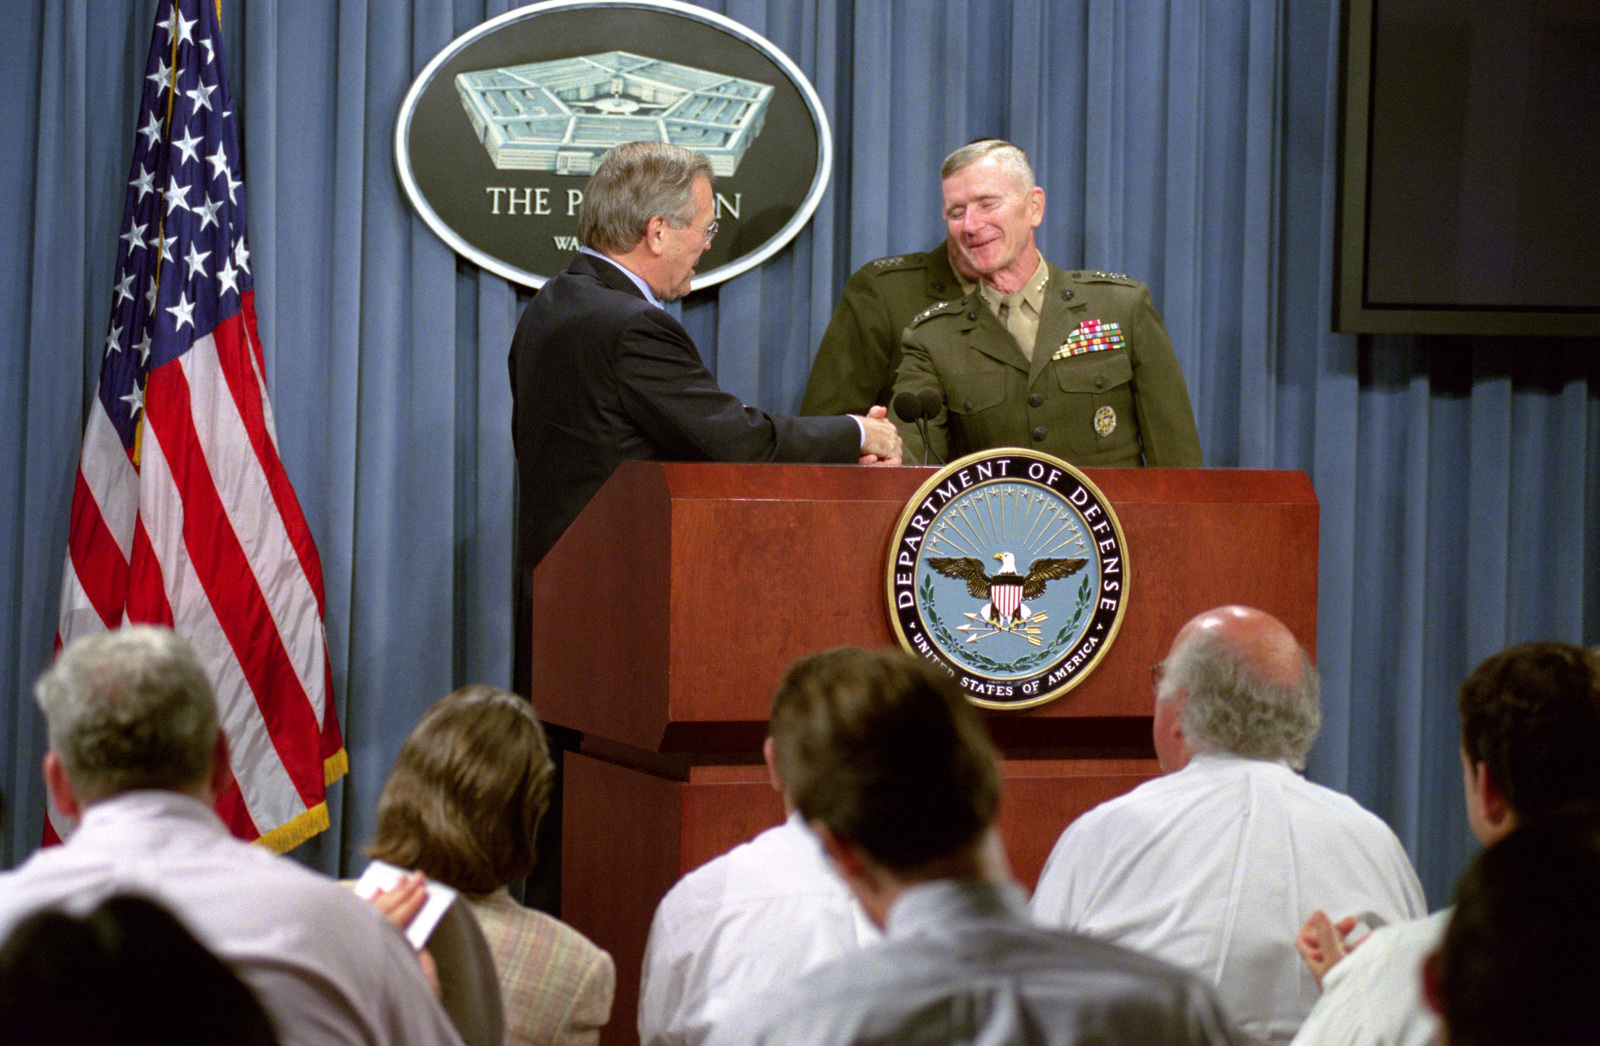 The Honorable Donald H. Rumsfeld (left), U.S. Secretary of Defense (SECDEF), and U.S. Marine Corps GEN. Peter Pace (rear, obscured), Vice Chairman of the Joint Chiefs of STAFF, conduct an operational update briefing at the Pentagon, Washington, D.C., on July 30, 2002.  The SECDEF shakes the hand of GEN. Gregory Newbold, frequent news briefer, after announcing his retirement from Active Service.  OSD Package No. A07D-00588 (DOD PHOTO by Robert D. Ward) (Released)